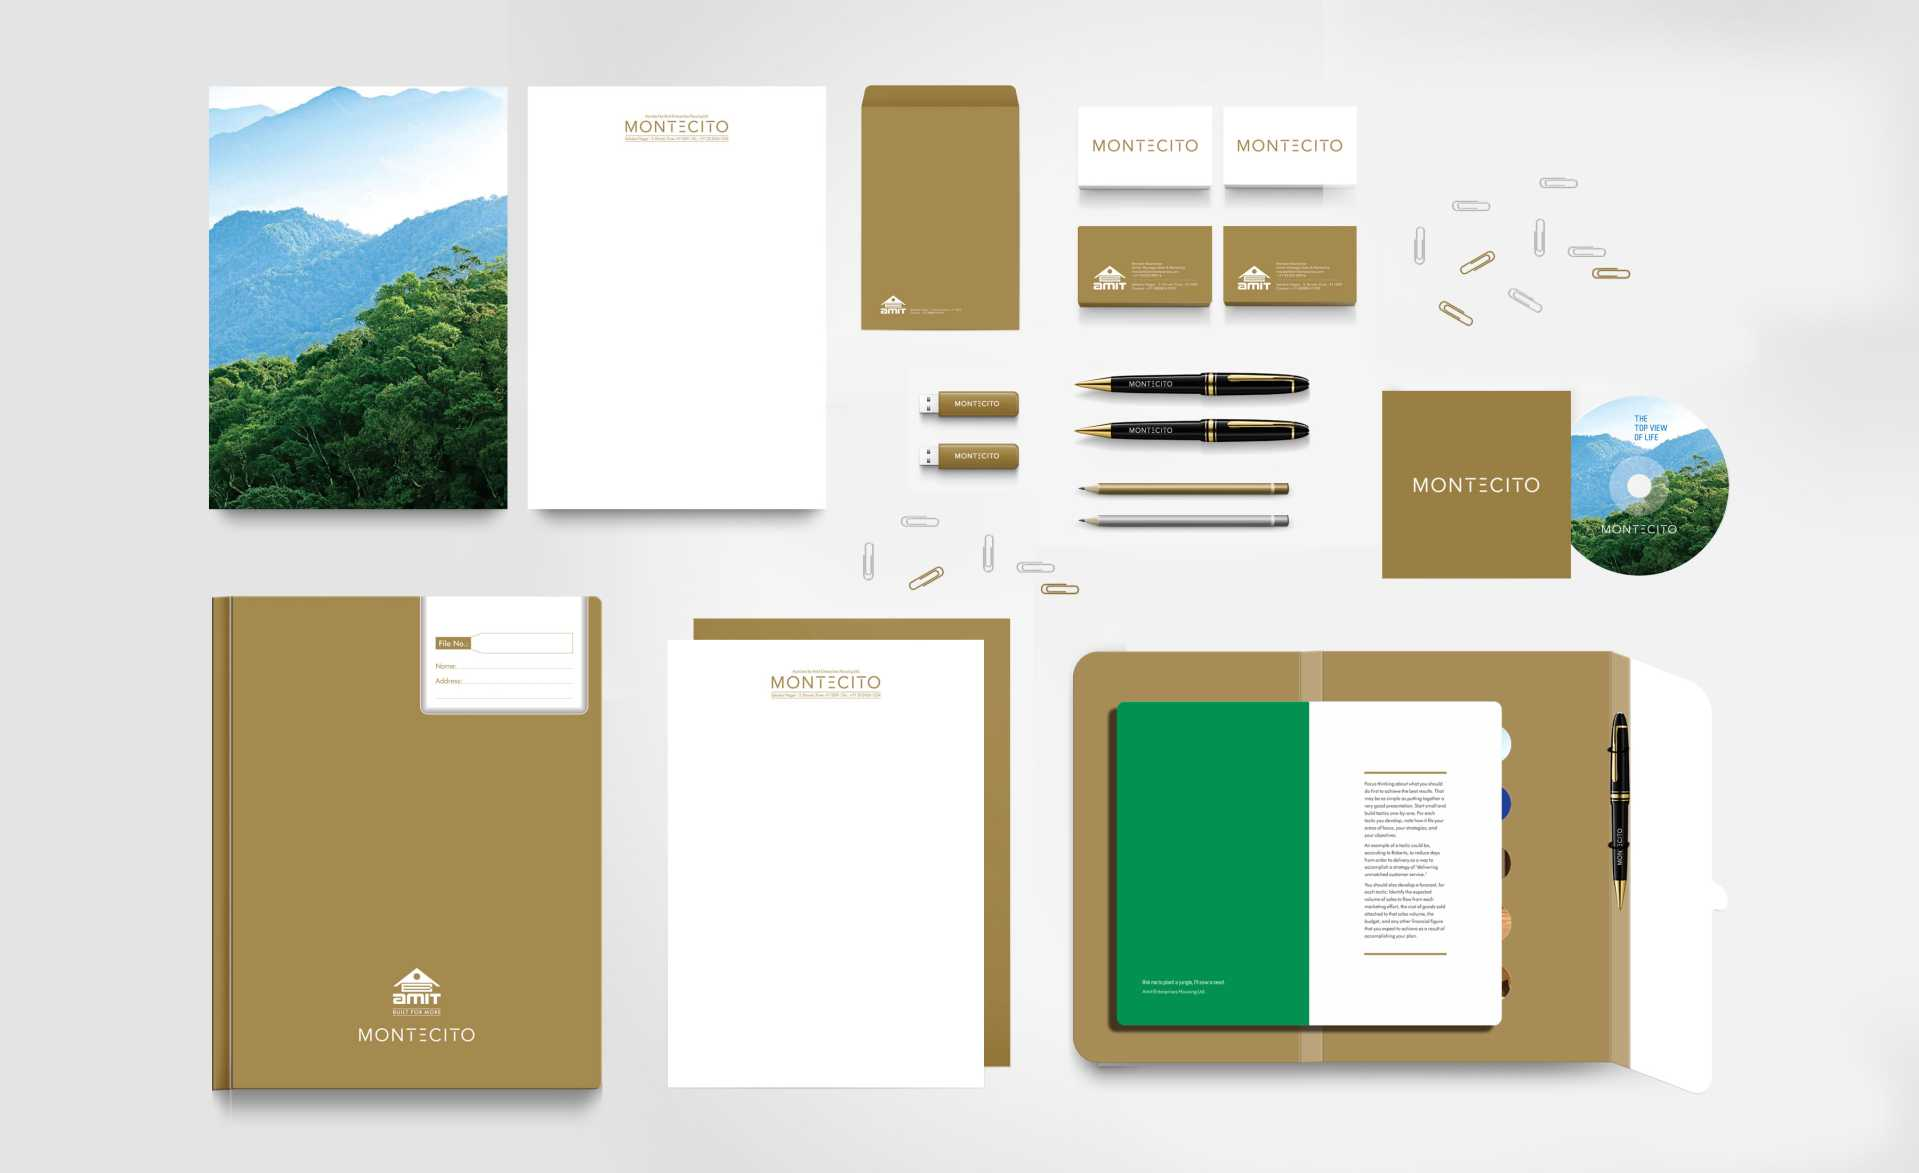 Extended stationary design for Montecito- zoom